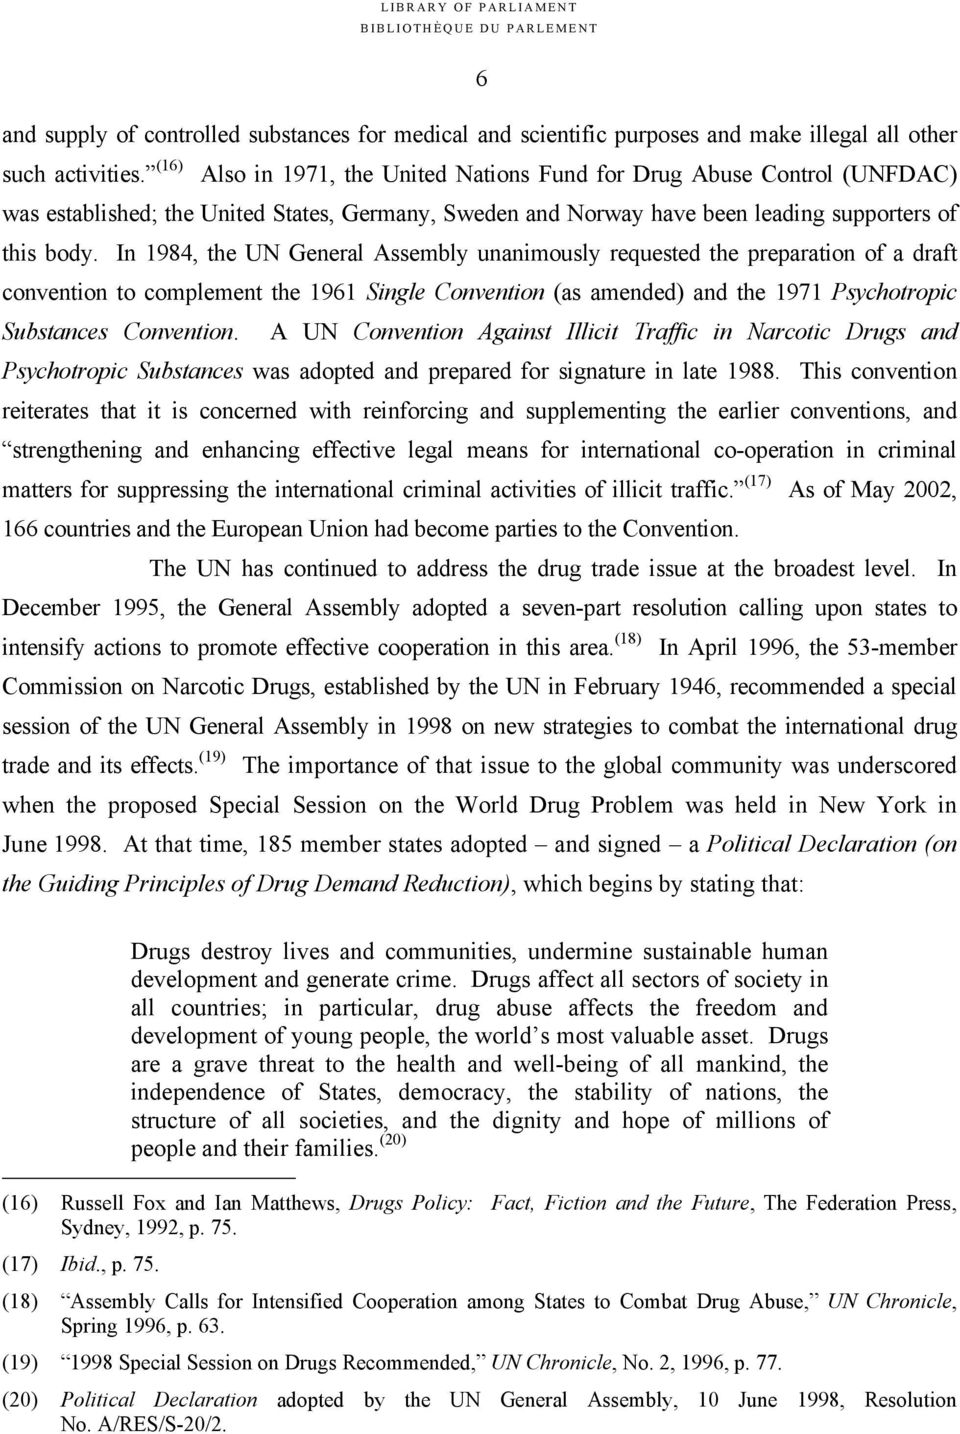 In 1984, the UN General Assembly unanimously requested the preparation of a draft convention to complement the 1961 Single Convention (as amended) and the 1971 Psychotropic Substances Convention.